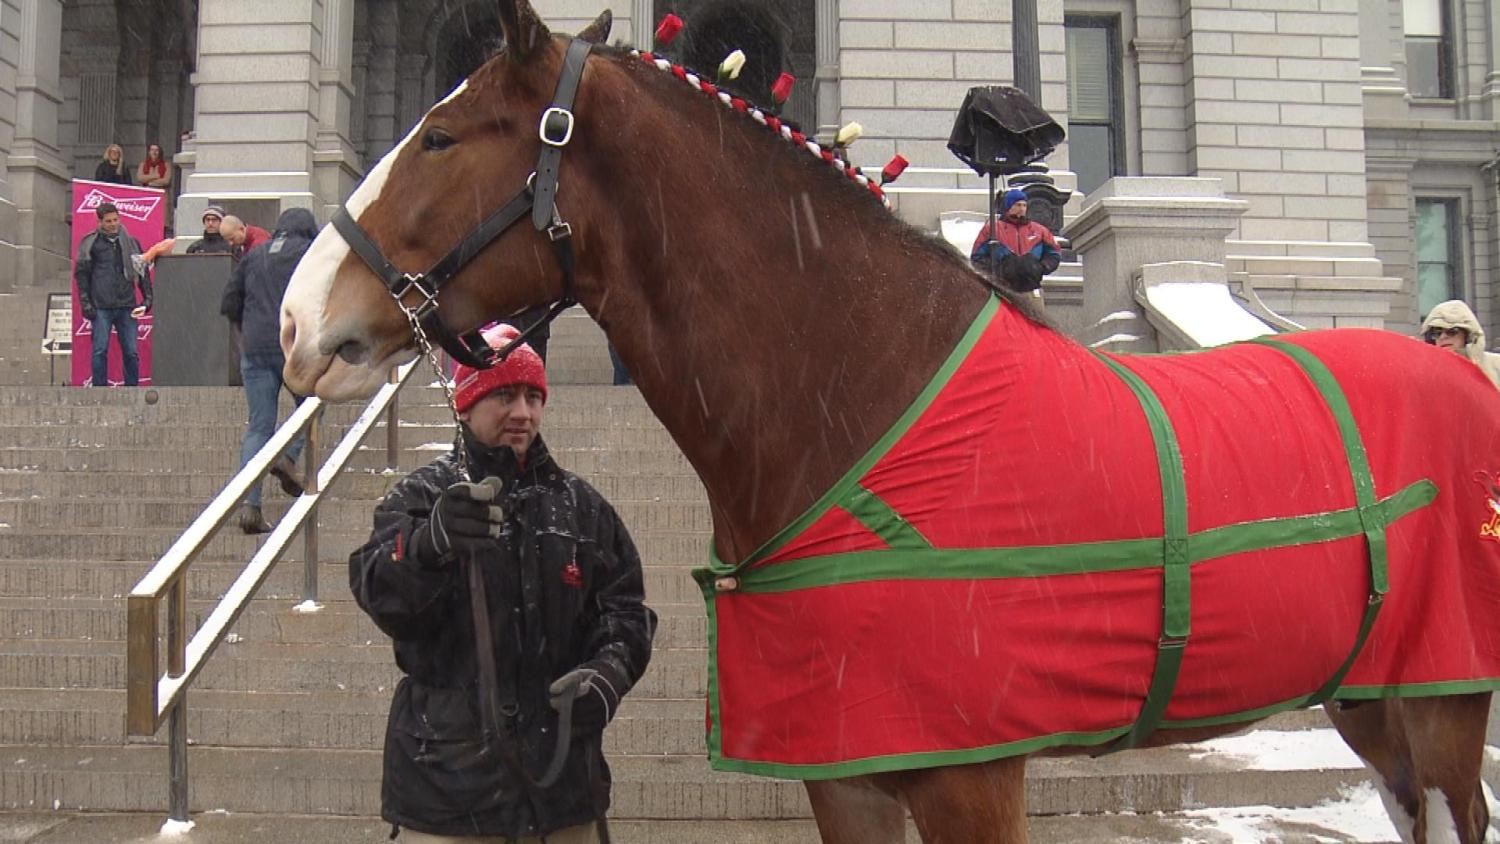 Budweiser Clydesdales Visit Colorado Capitol To Celebrate Full-strength Beer Ingroceries photo